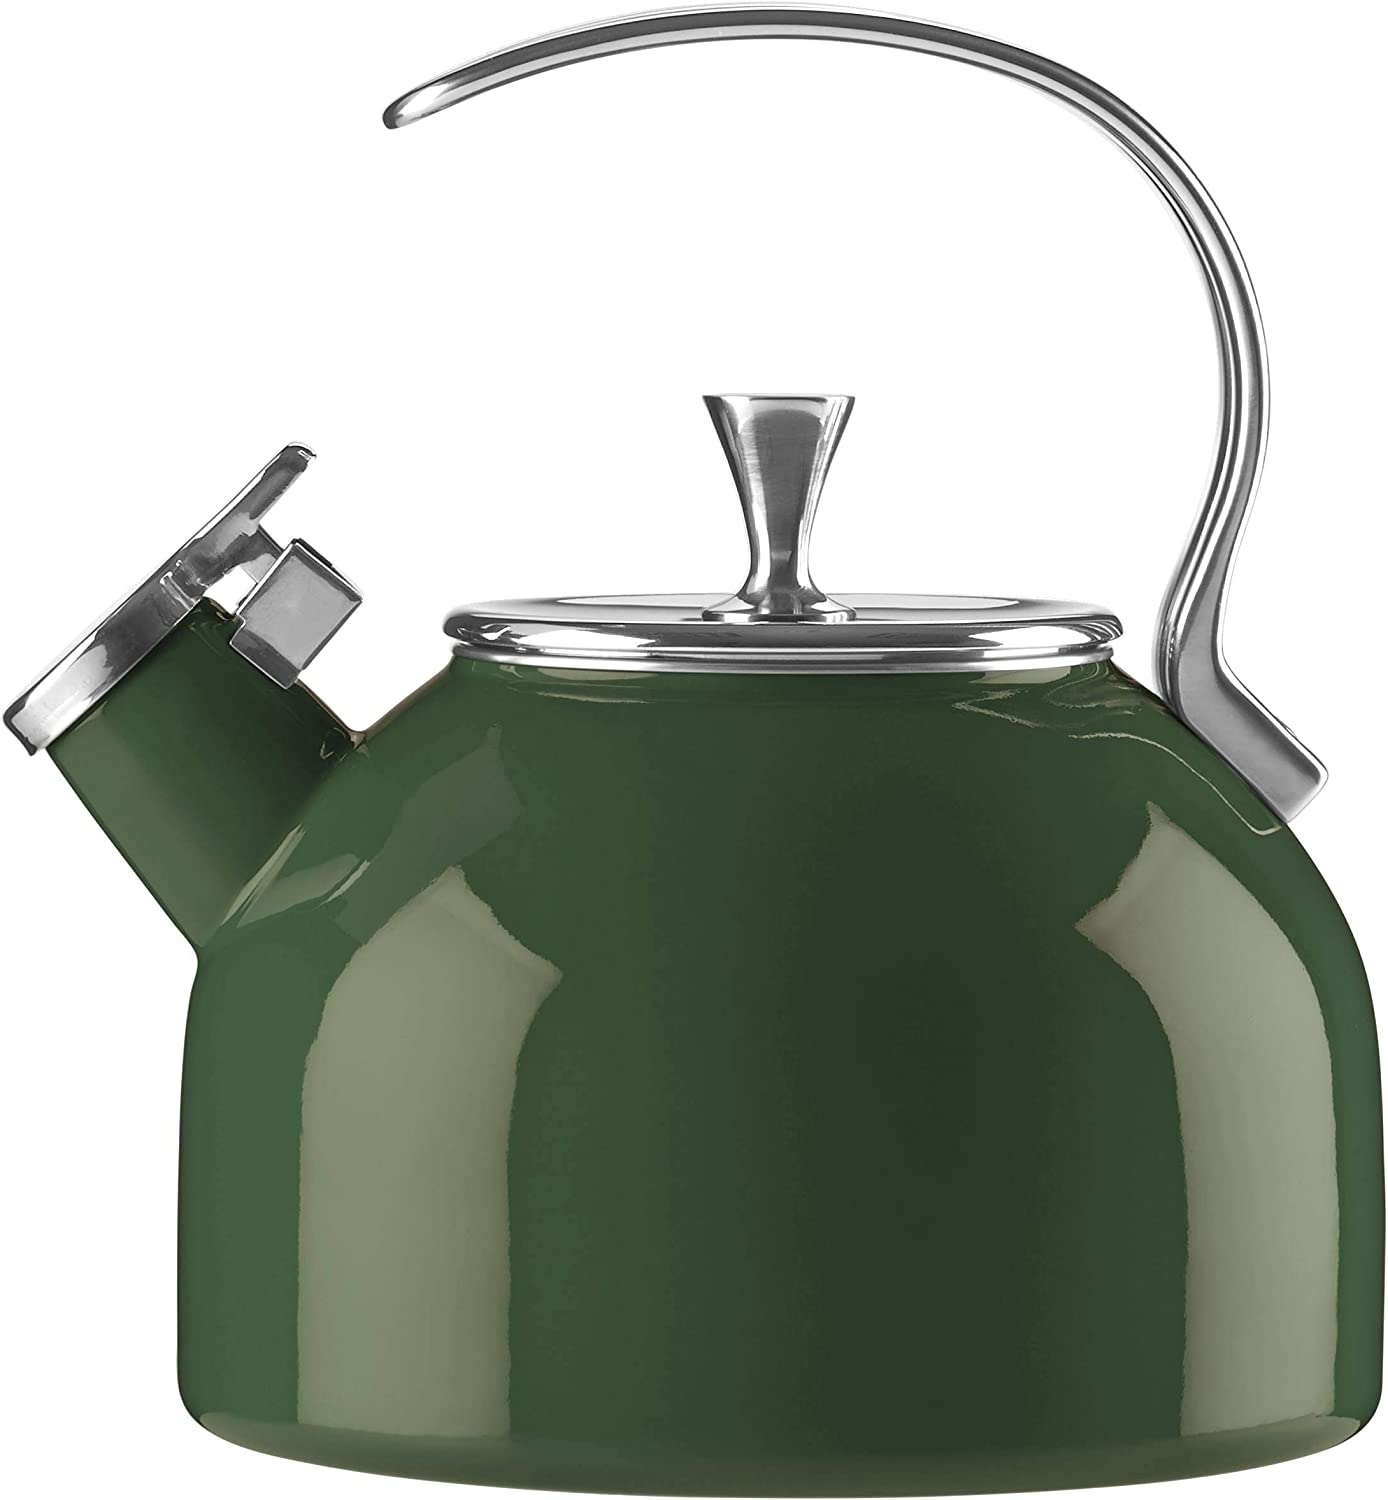 Kate Spade New York 889682 Kate Spade Kitchen Clover Kettle, 3.5 LB, Green